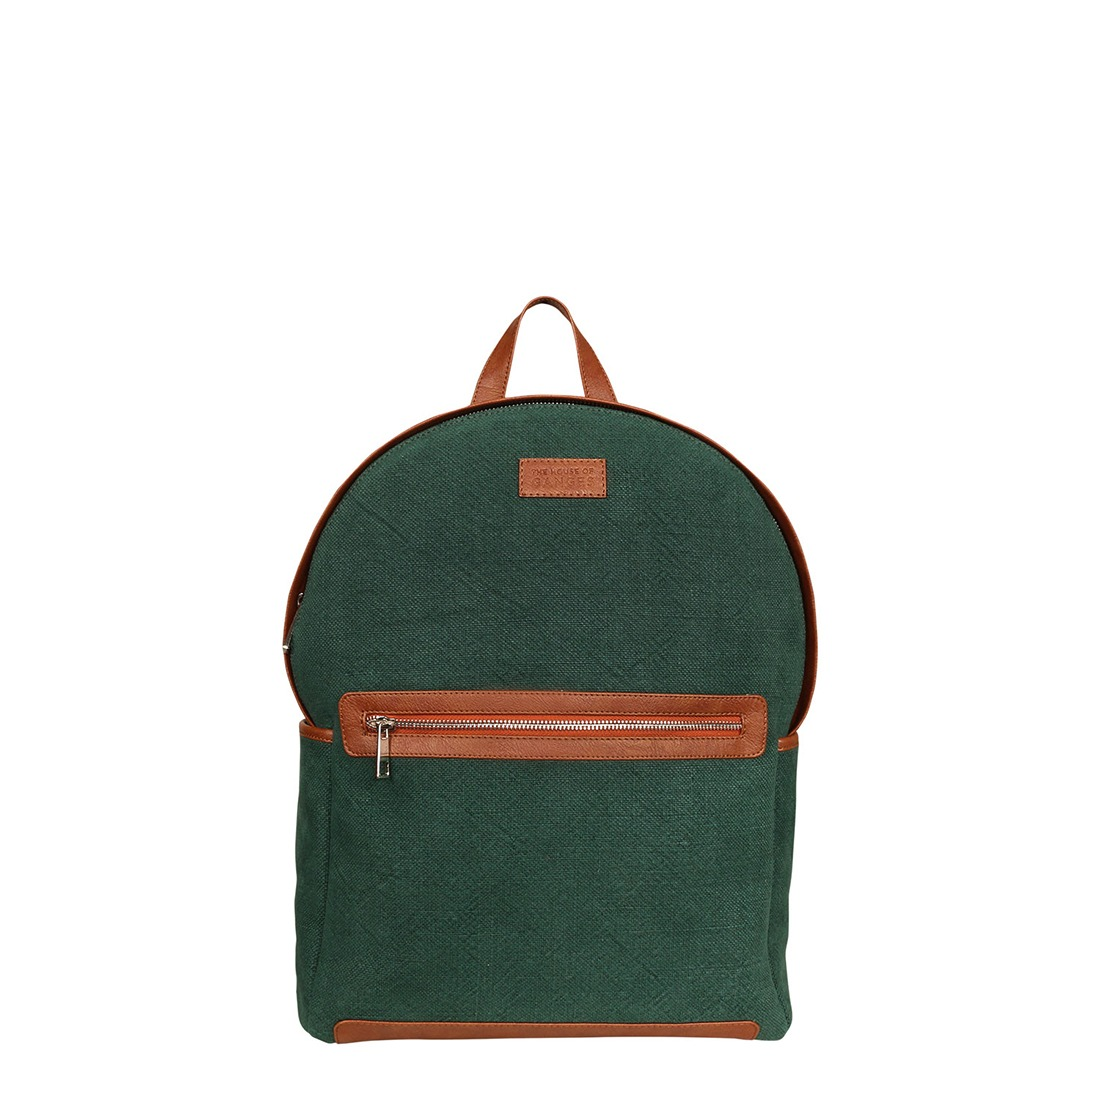 The Phoebe Backpack